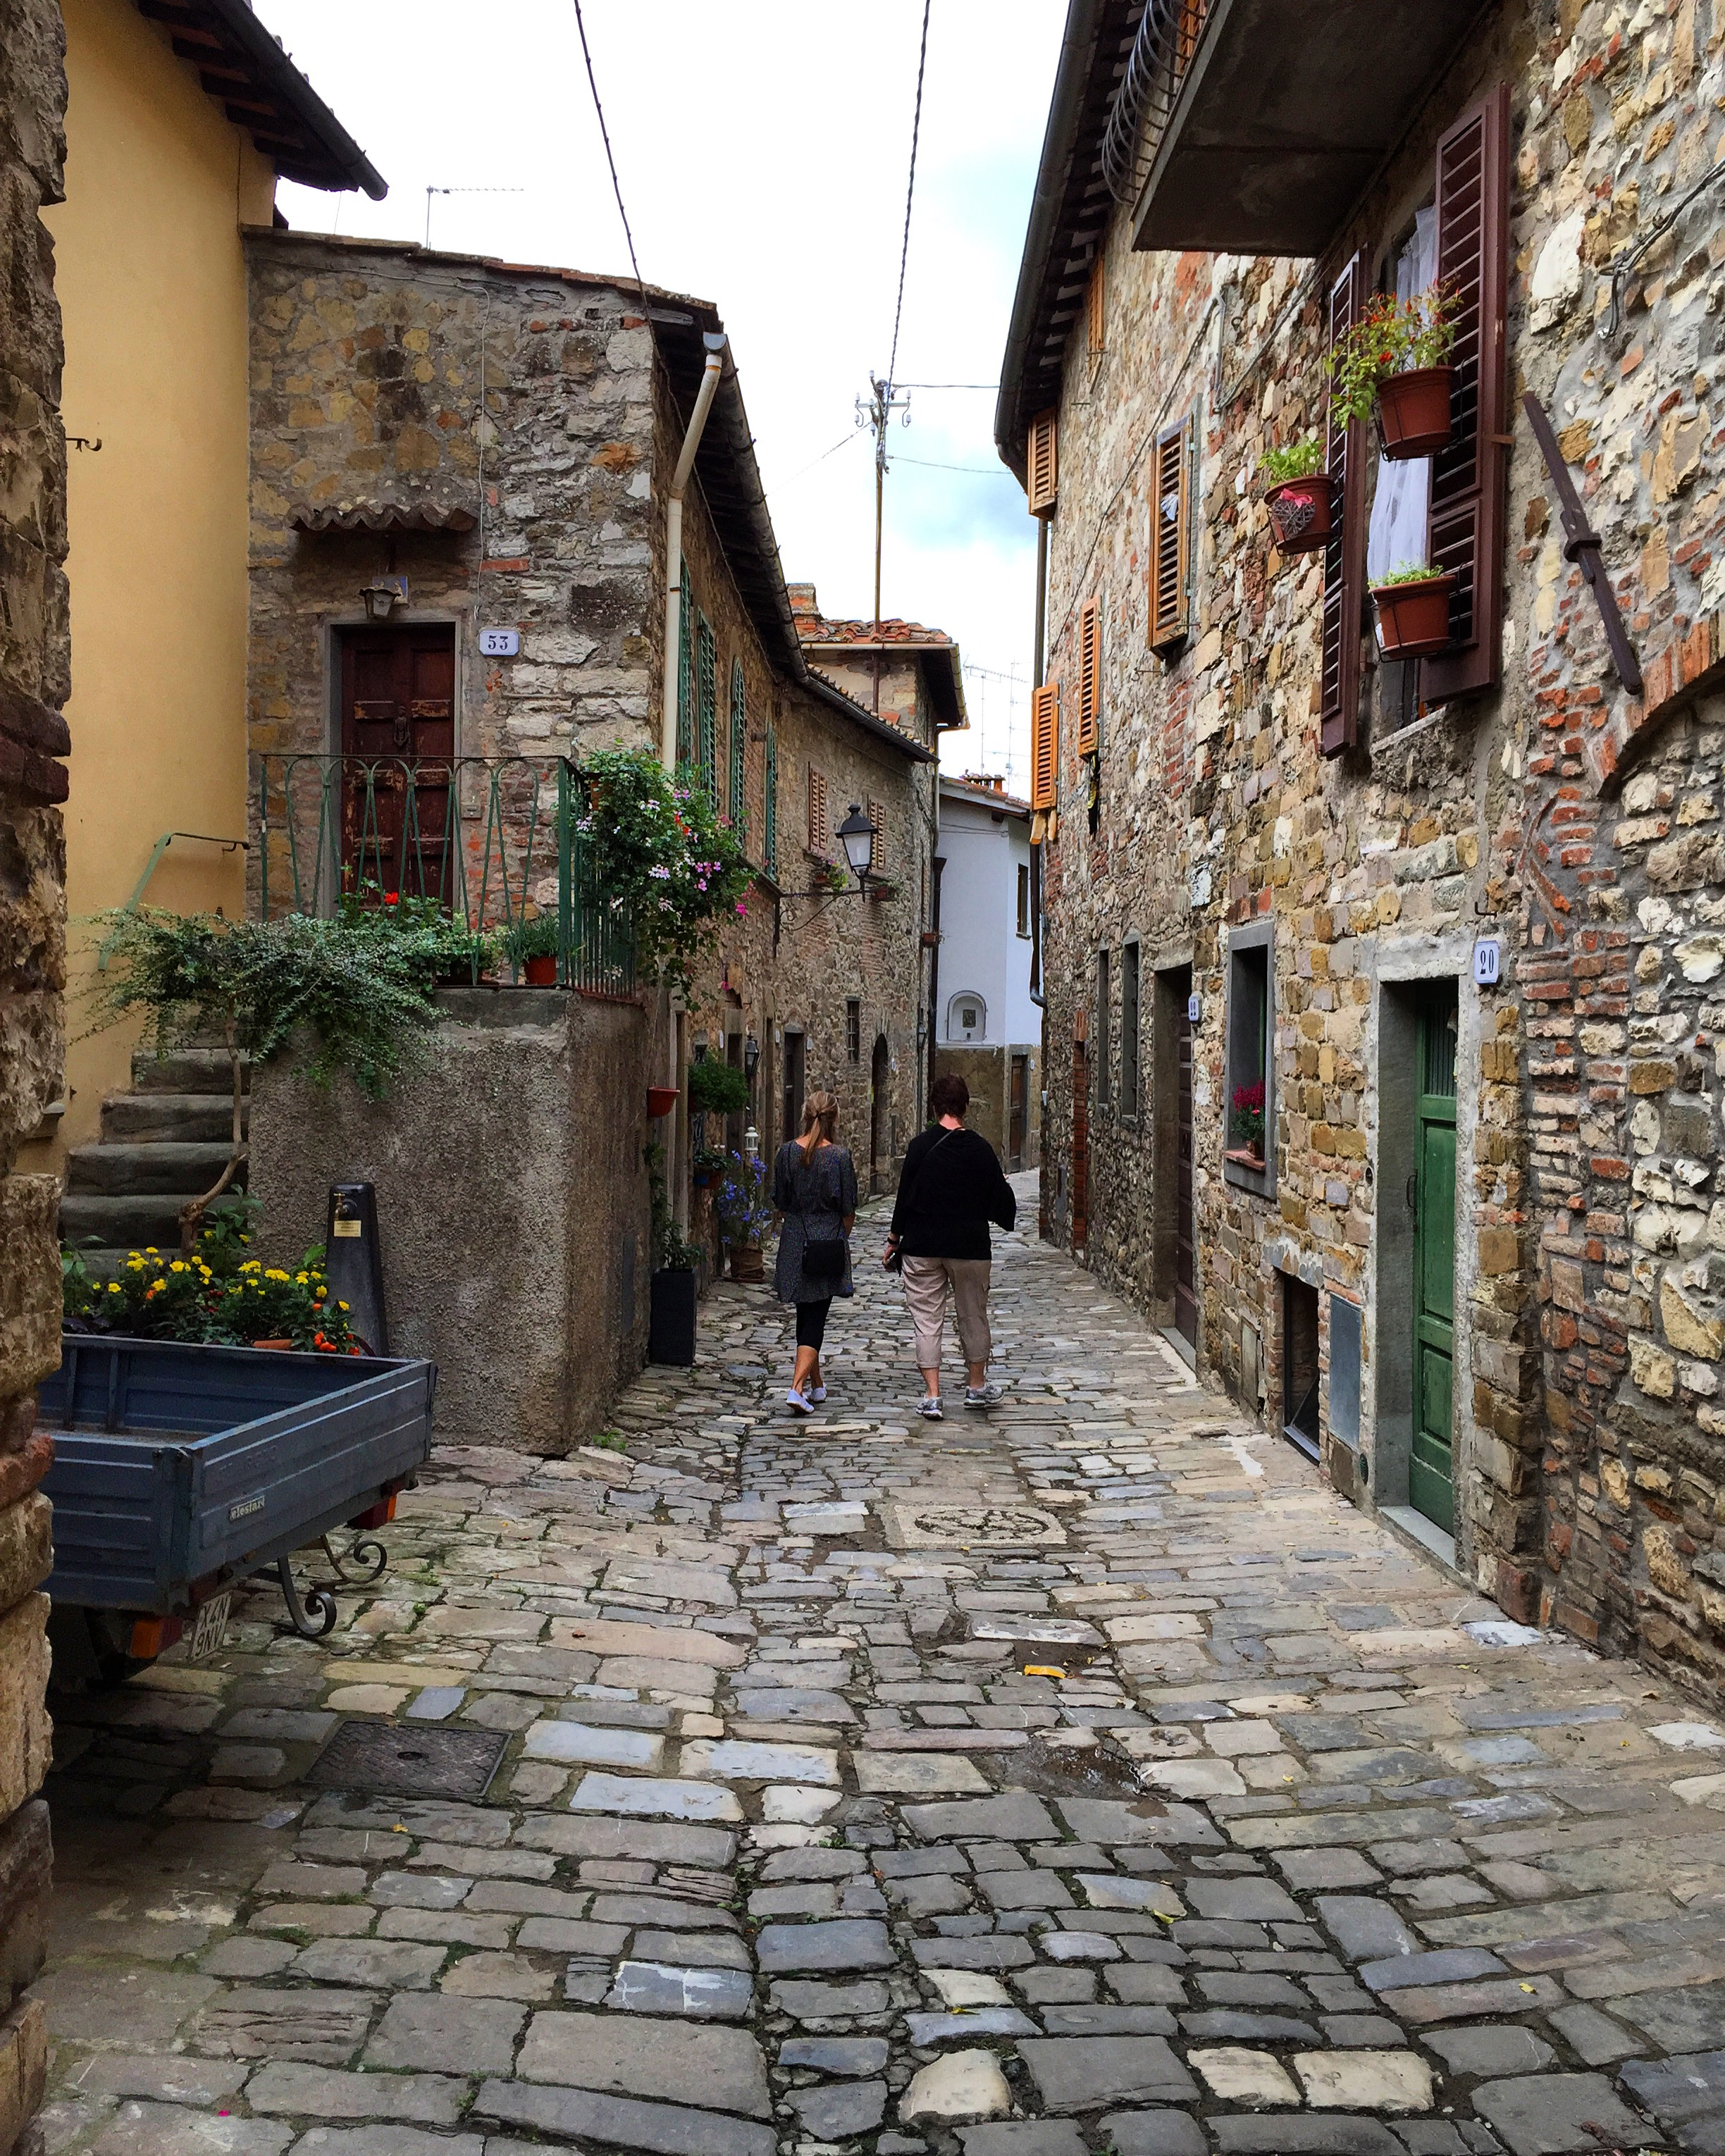 2015 travel italian style Women's tuscany clients, getting lost in the countryside of florence